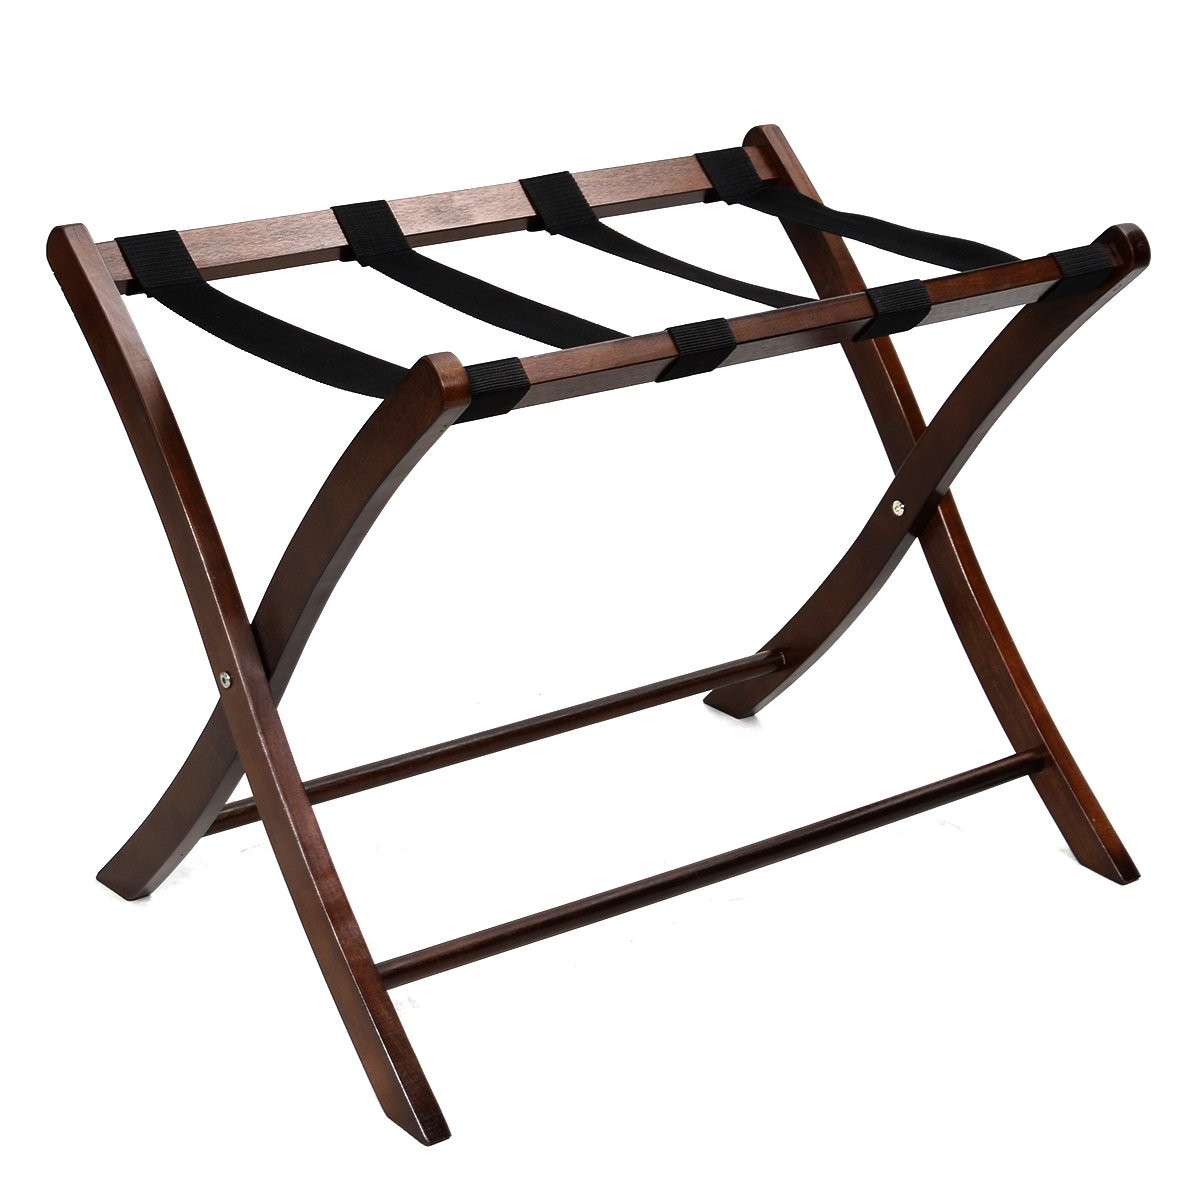 New Folding Winsome Wood Luggage Rack Classic Hotel Suitcase Stand Passenger